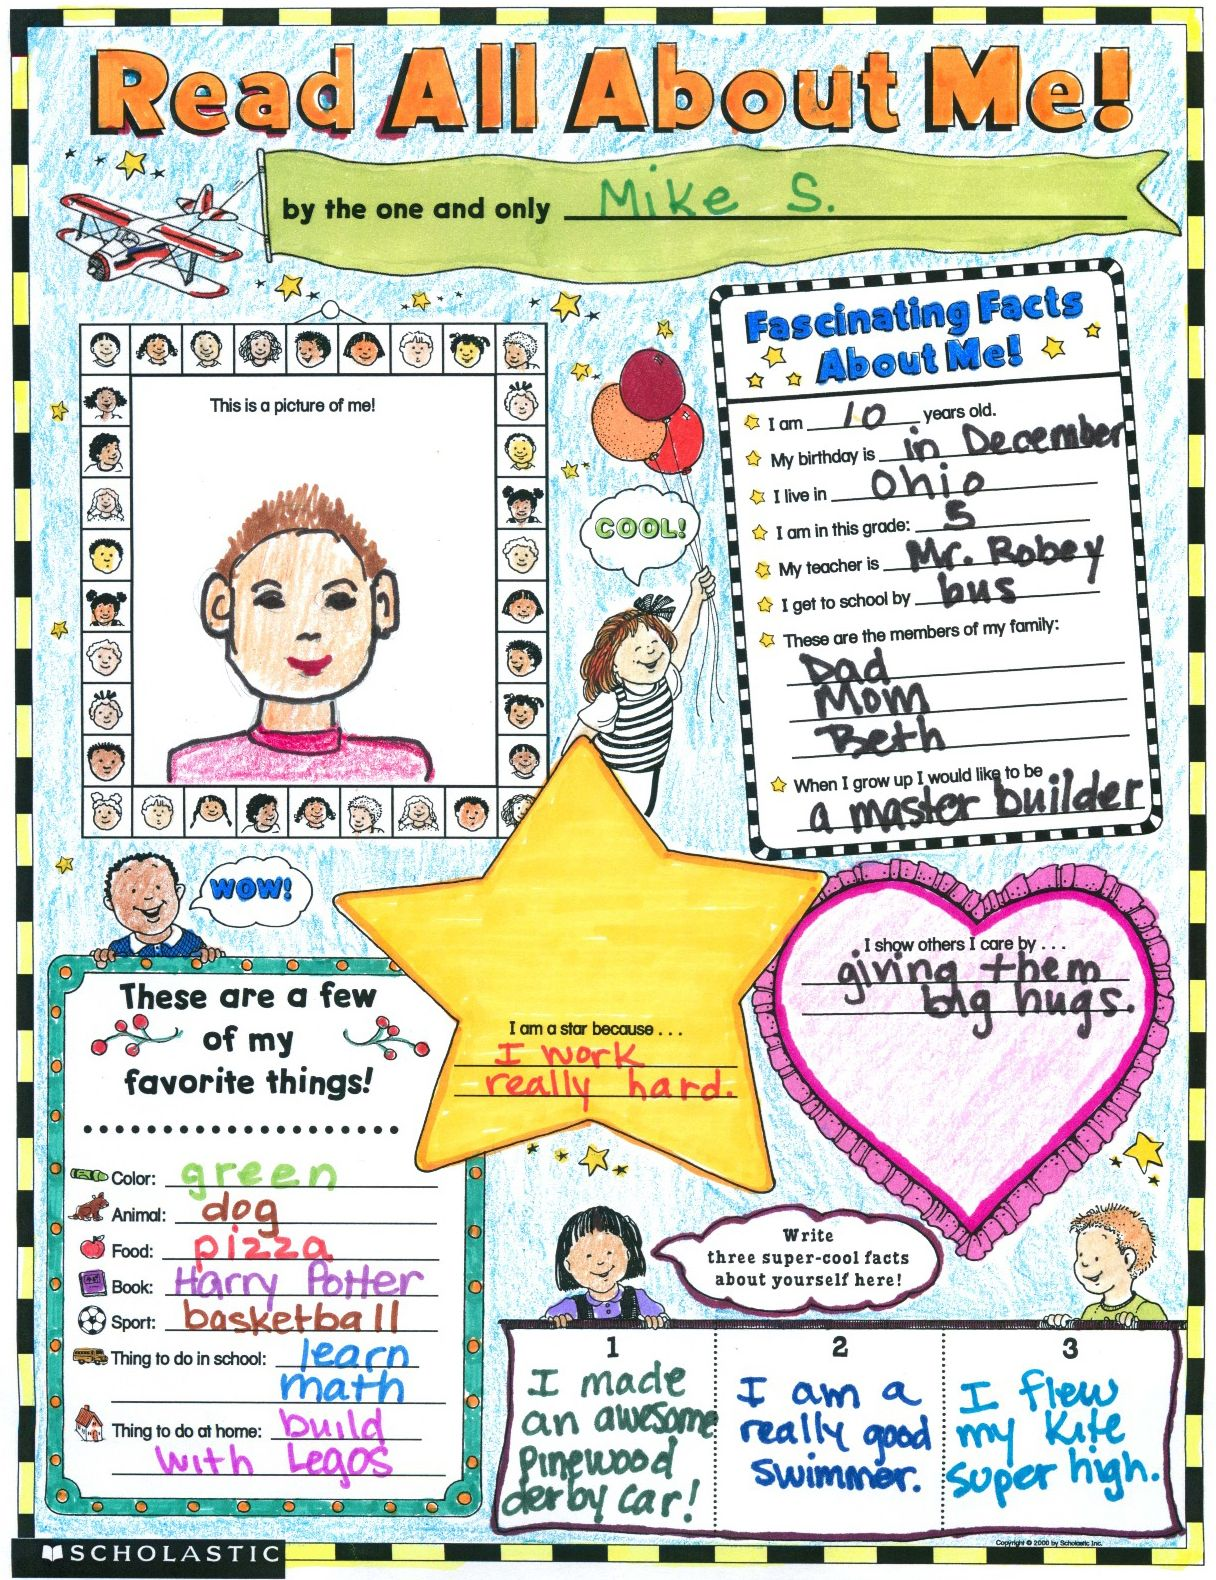 hight resolution of Read all about me poster: classroom worksheet.  #AllAboutMeActivities#AllAboutMePoster #Moti…   All about me poster